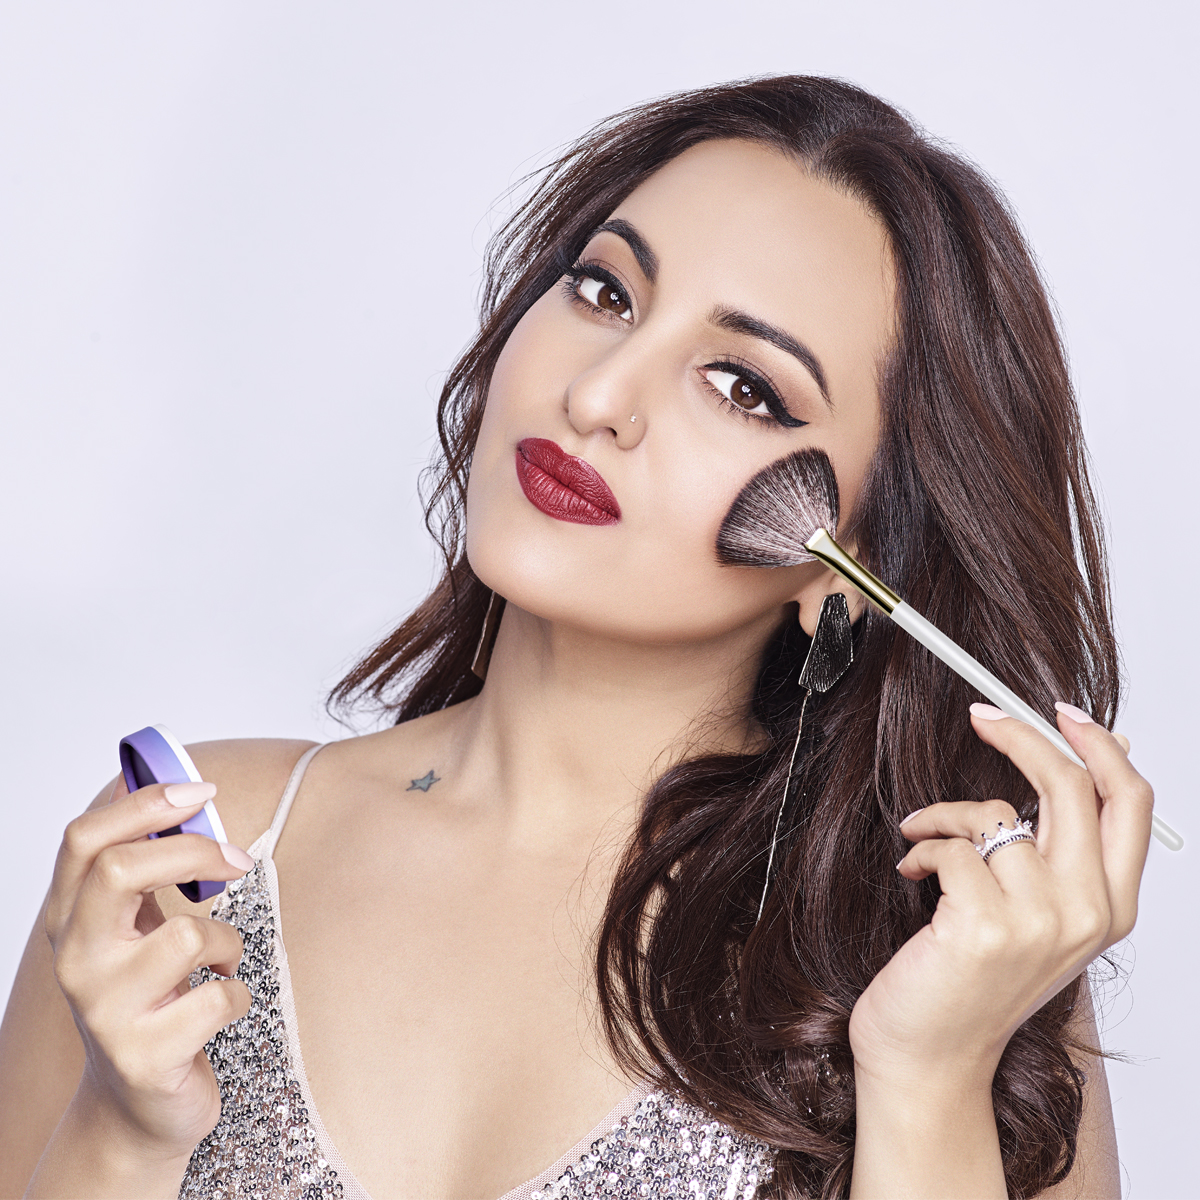 Actor Sonakshi Sinha on her beauty routine & being the face of MyGlamm